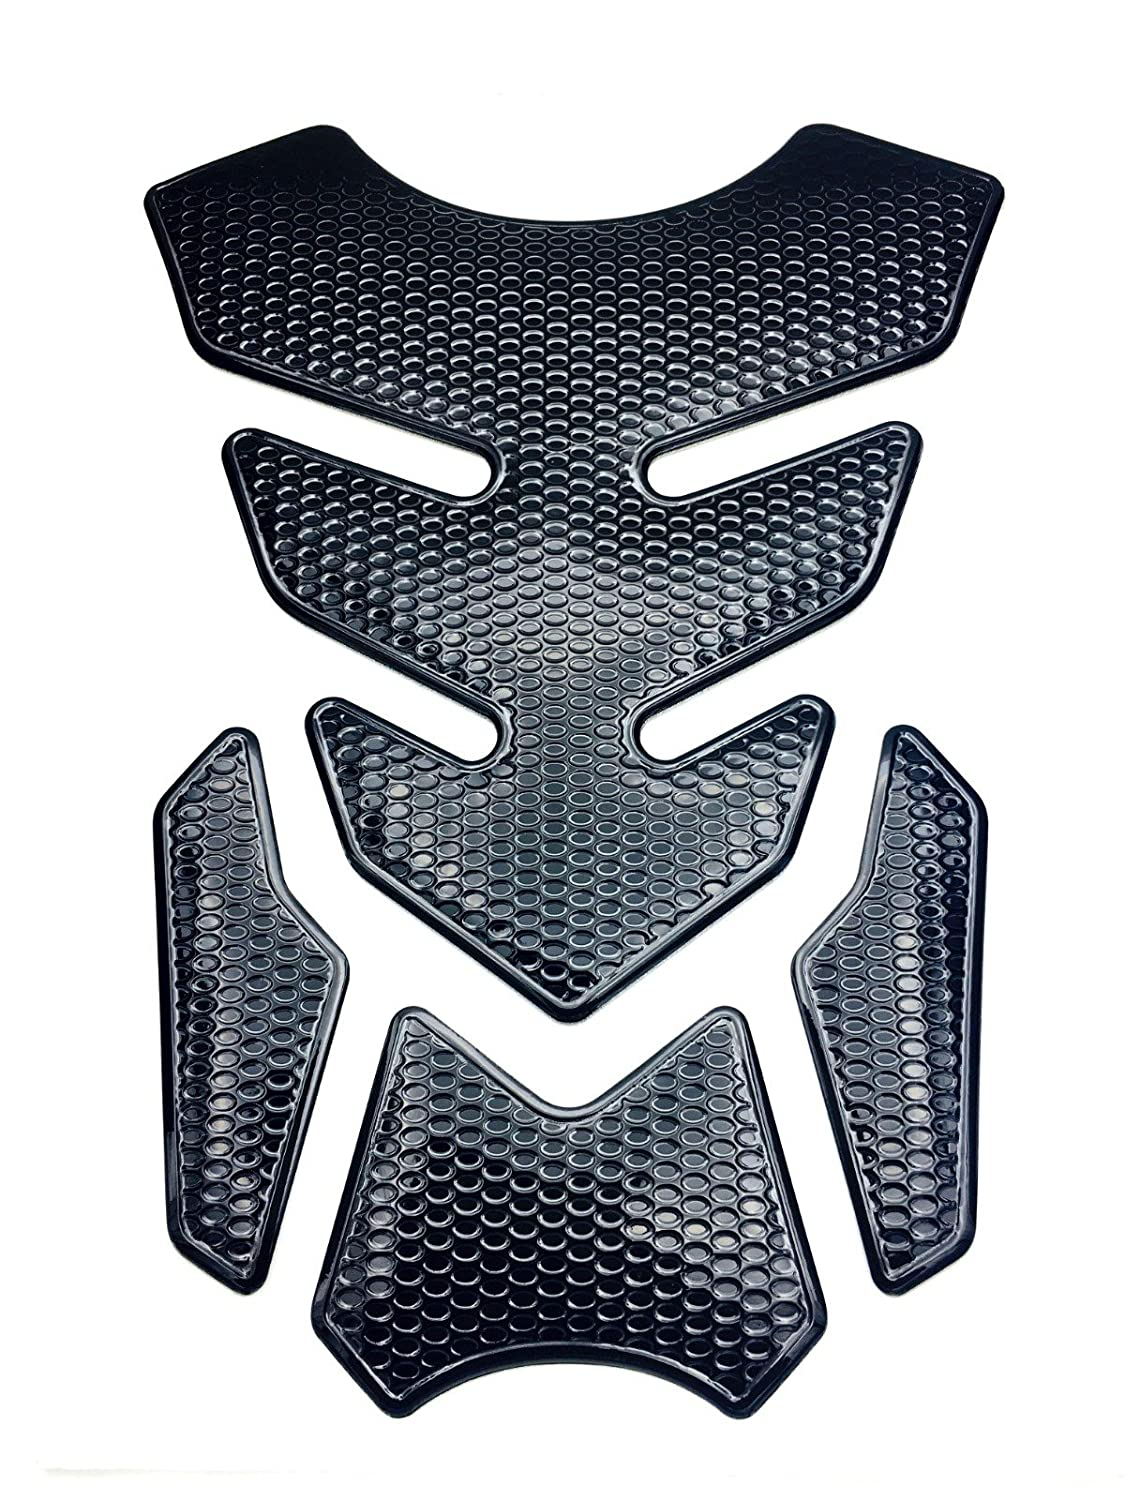 Niree Motorcycle Tank Gas Metallic Luster Protector Pad Sticker Decal for Yamaha MT-10 FJ-09//MT-09 Tracer C08#